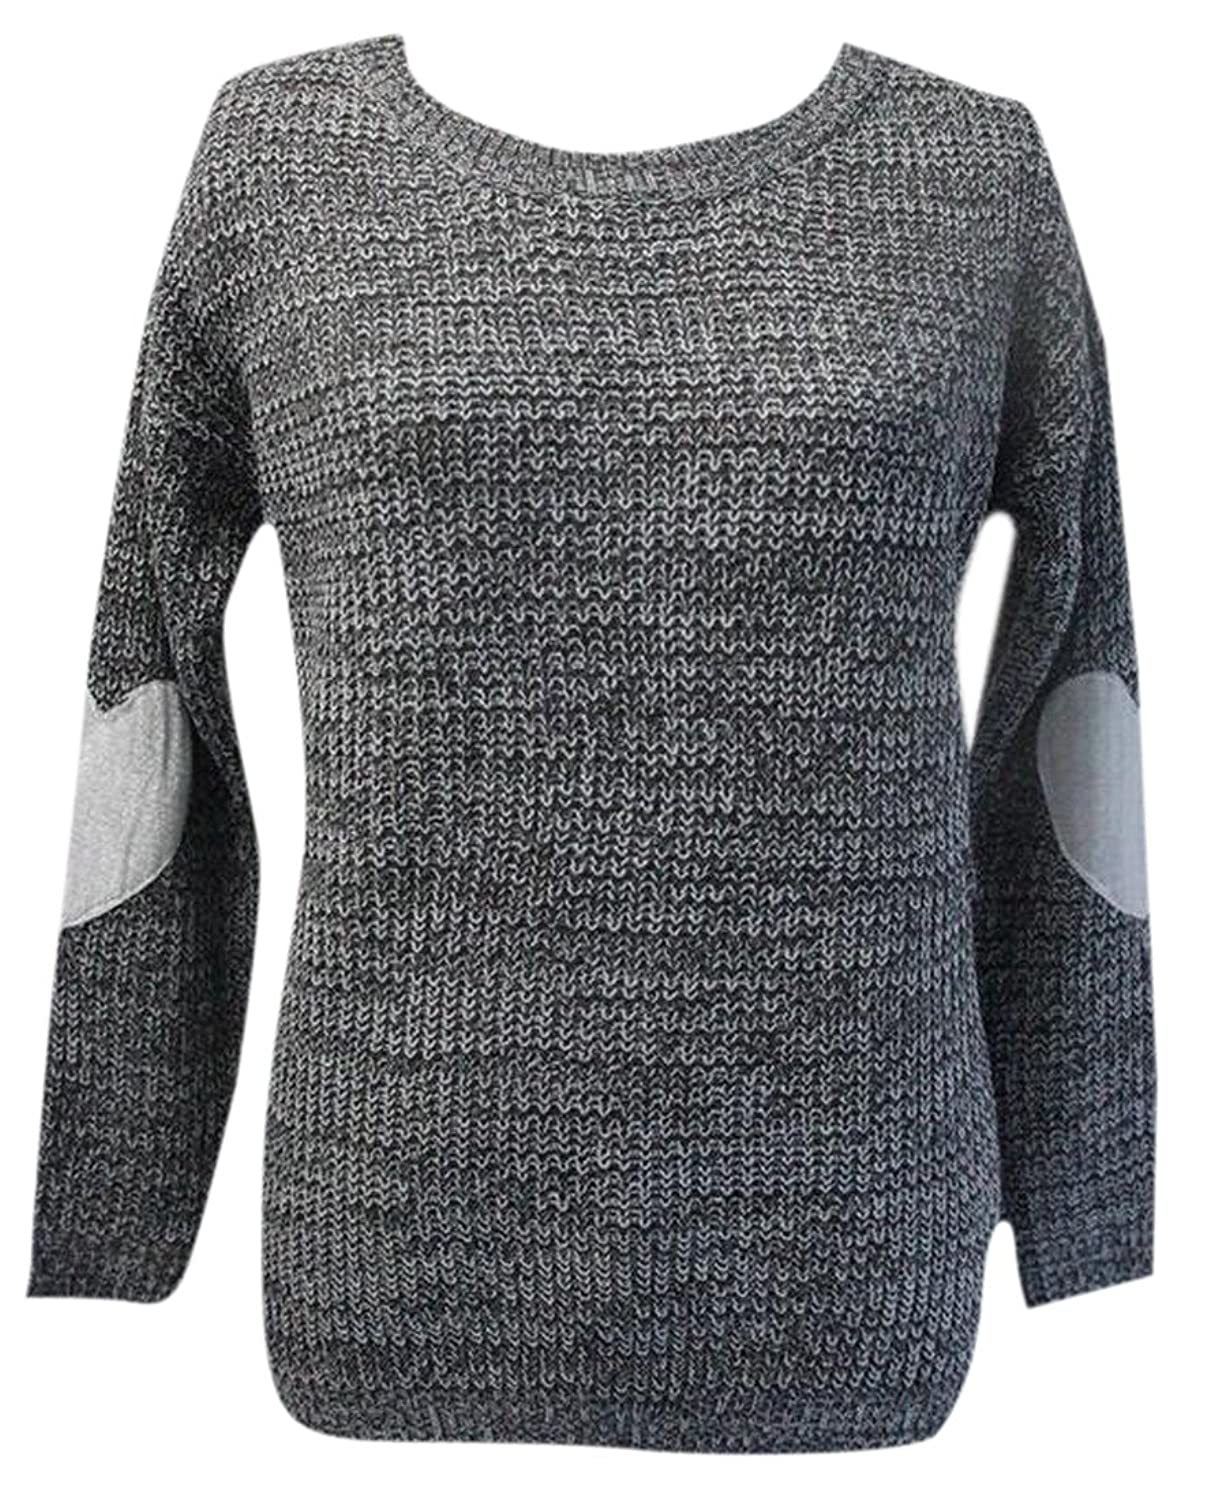 Vska Womens Loose Cozy Knitted Pullover Cable-Knit Sweater